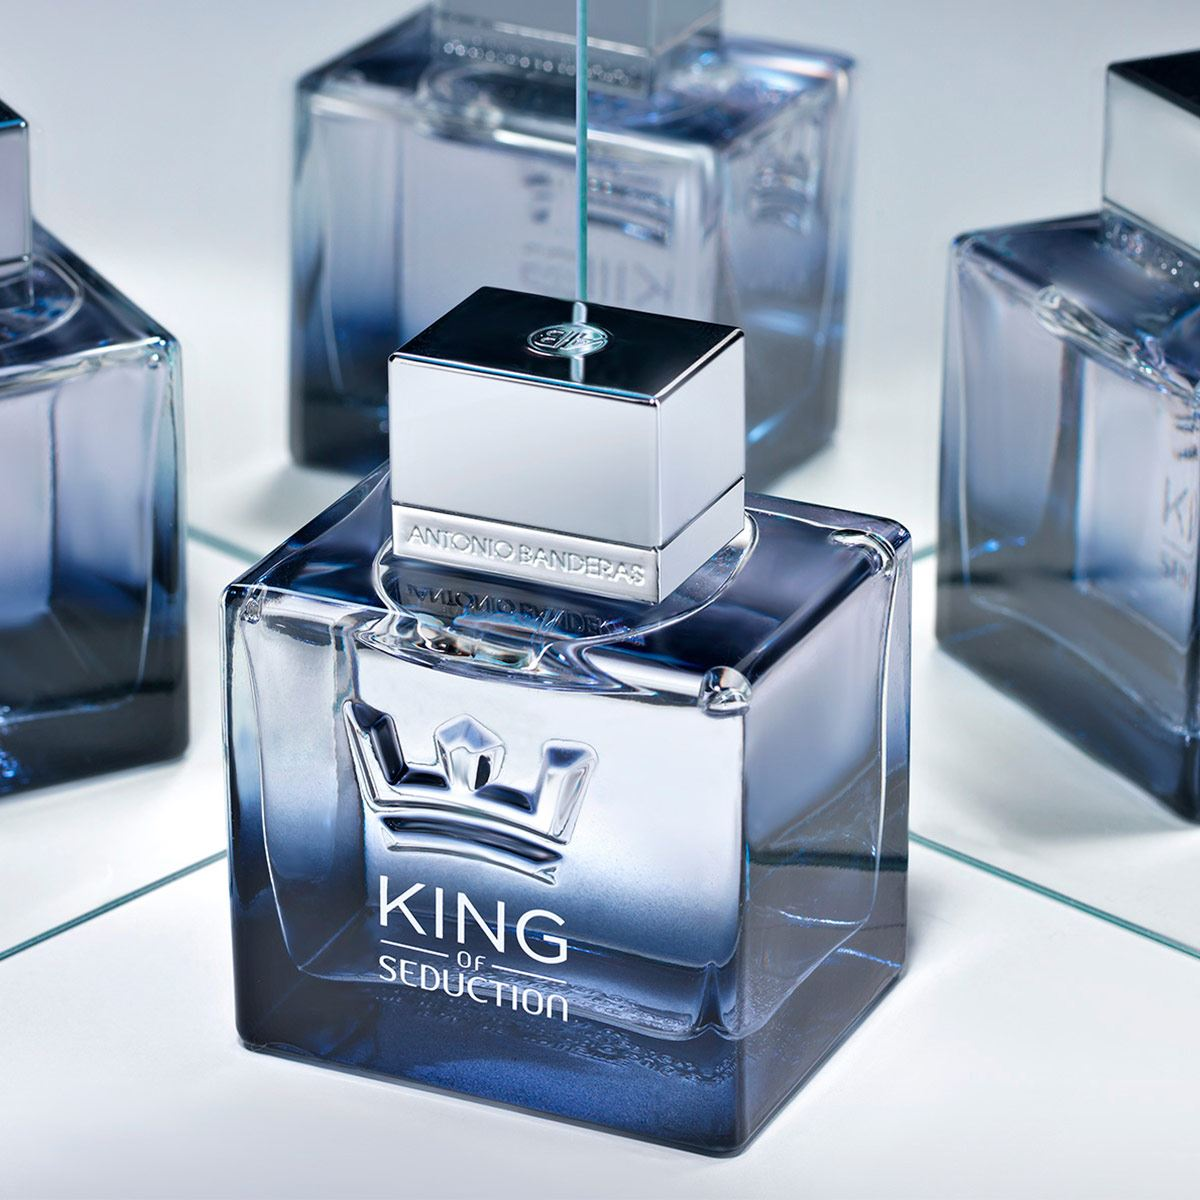 set para Caballero Antonio Banderas King of Seduction, 100ML  + Aftter Shave 75ML